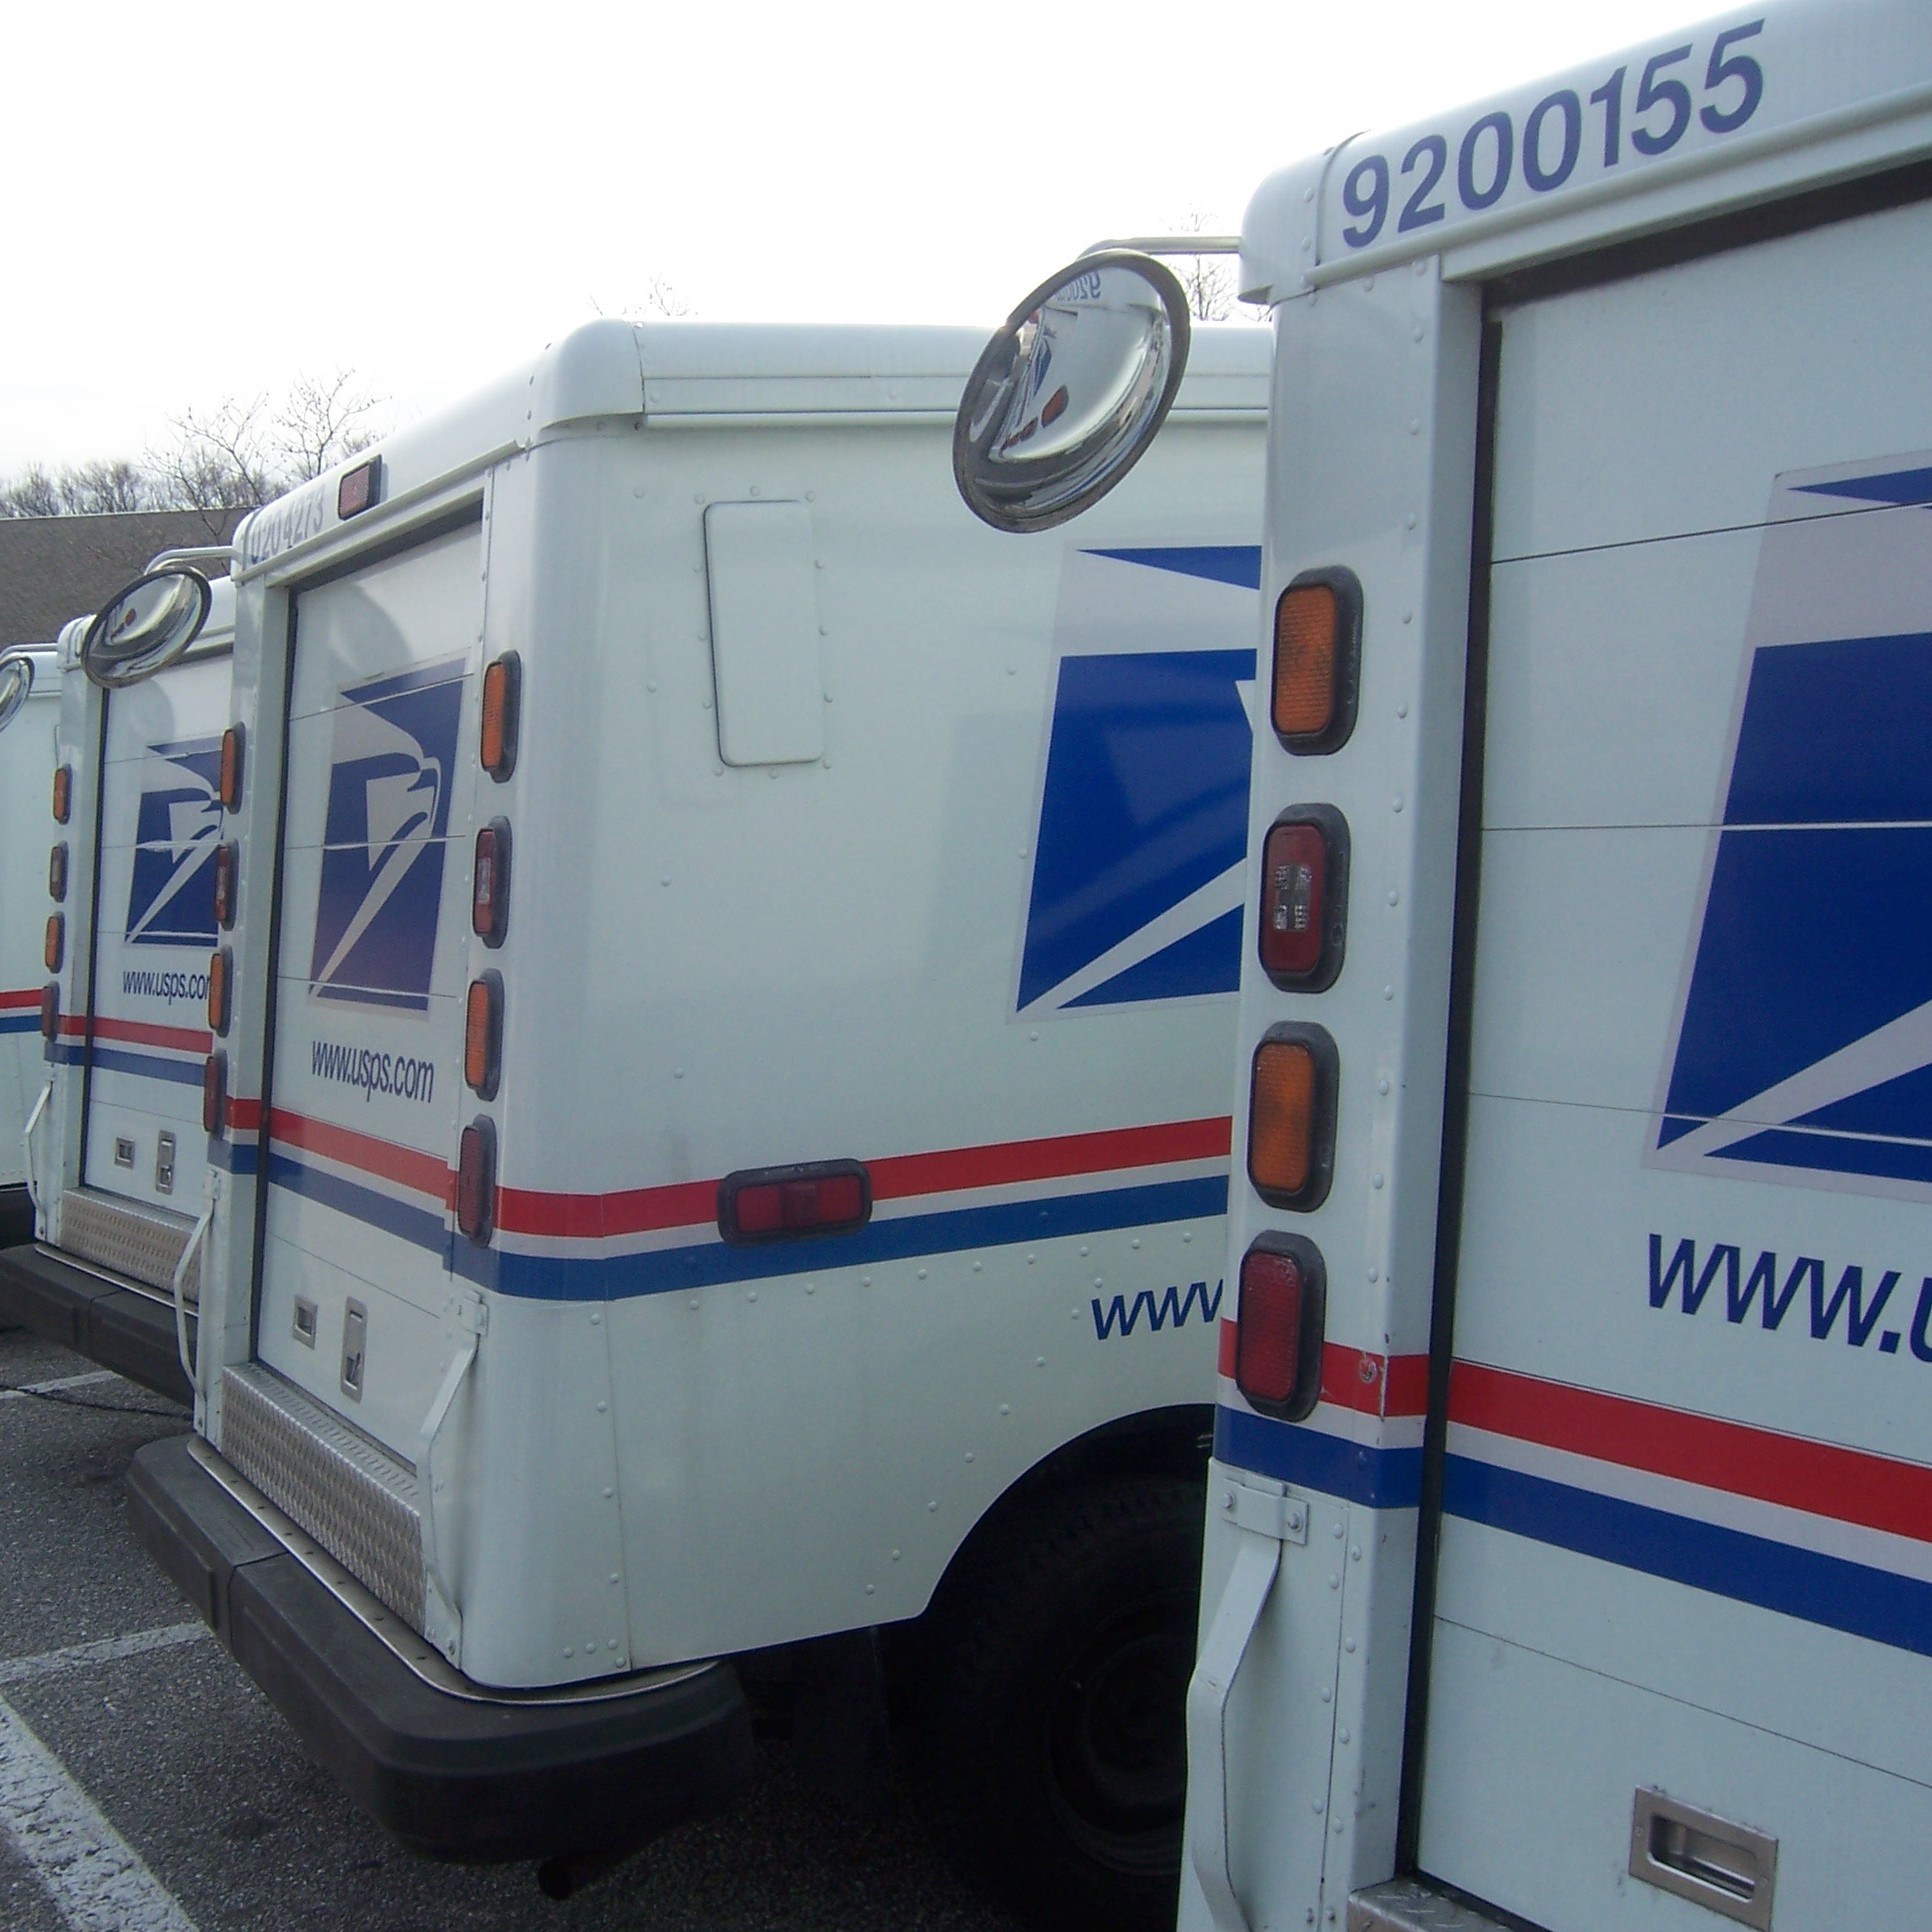 Internal Usps Documents Outline Plans To Hobble Mail Sorting